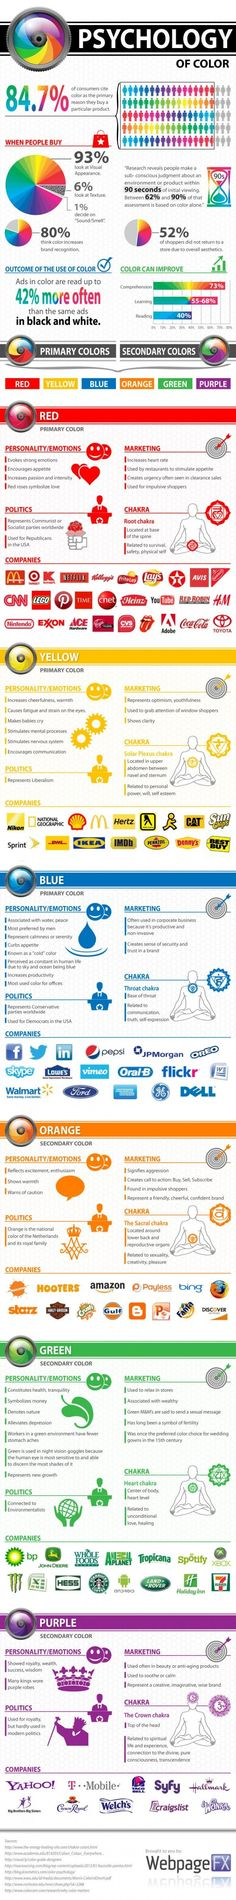 Take a look at this color psychology infographic